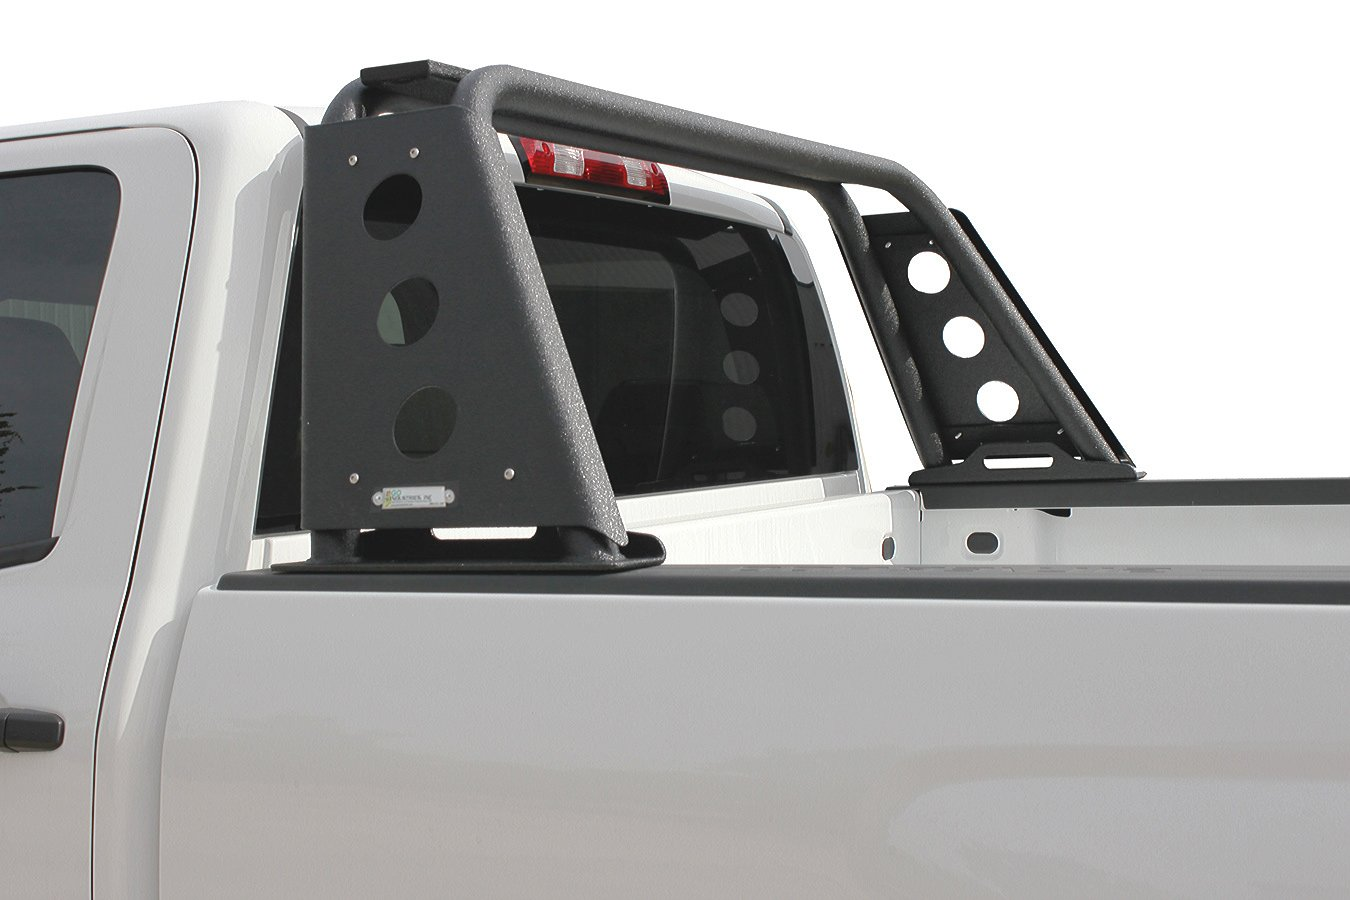 Go Industries Baja Rak Free Shipping On All Headache Racks